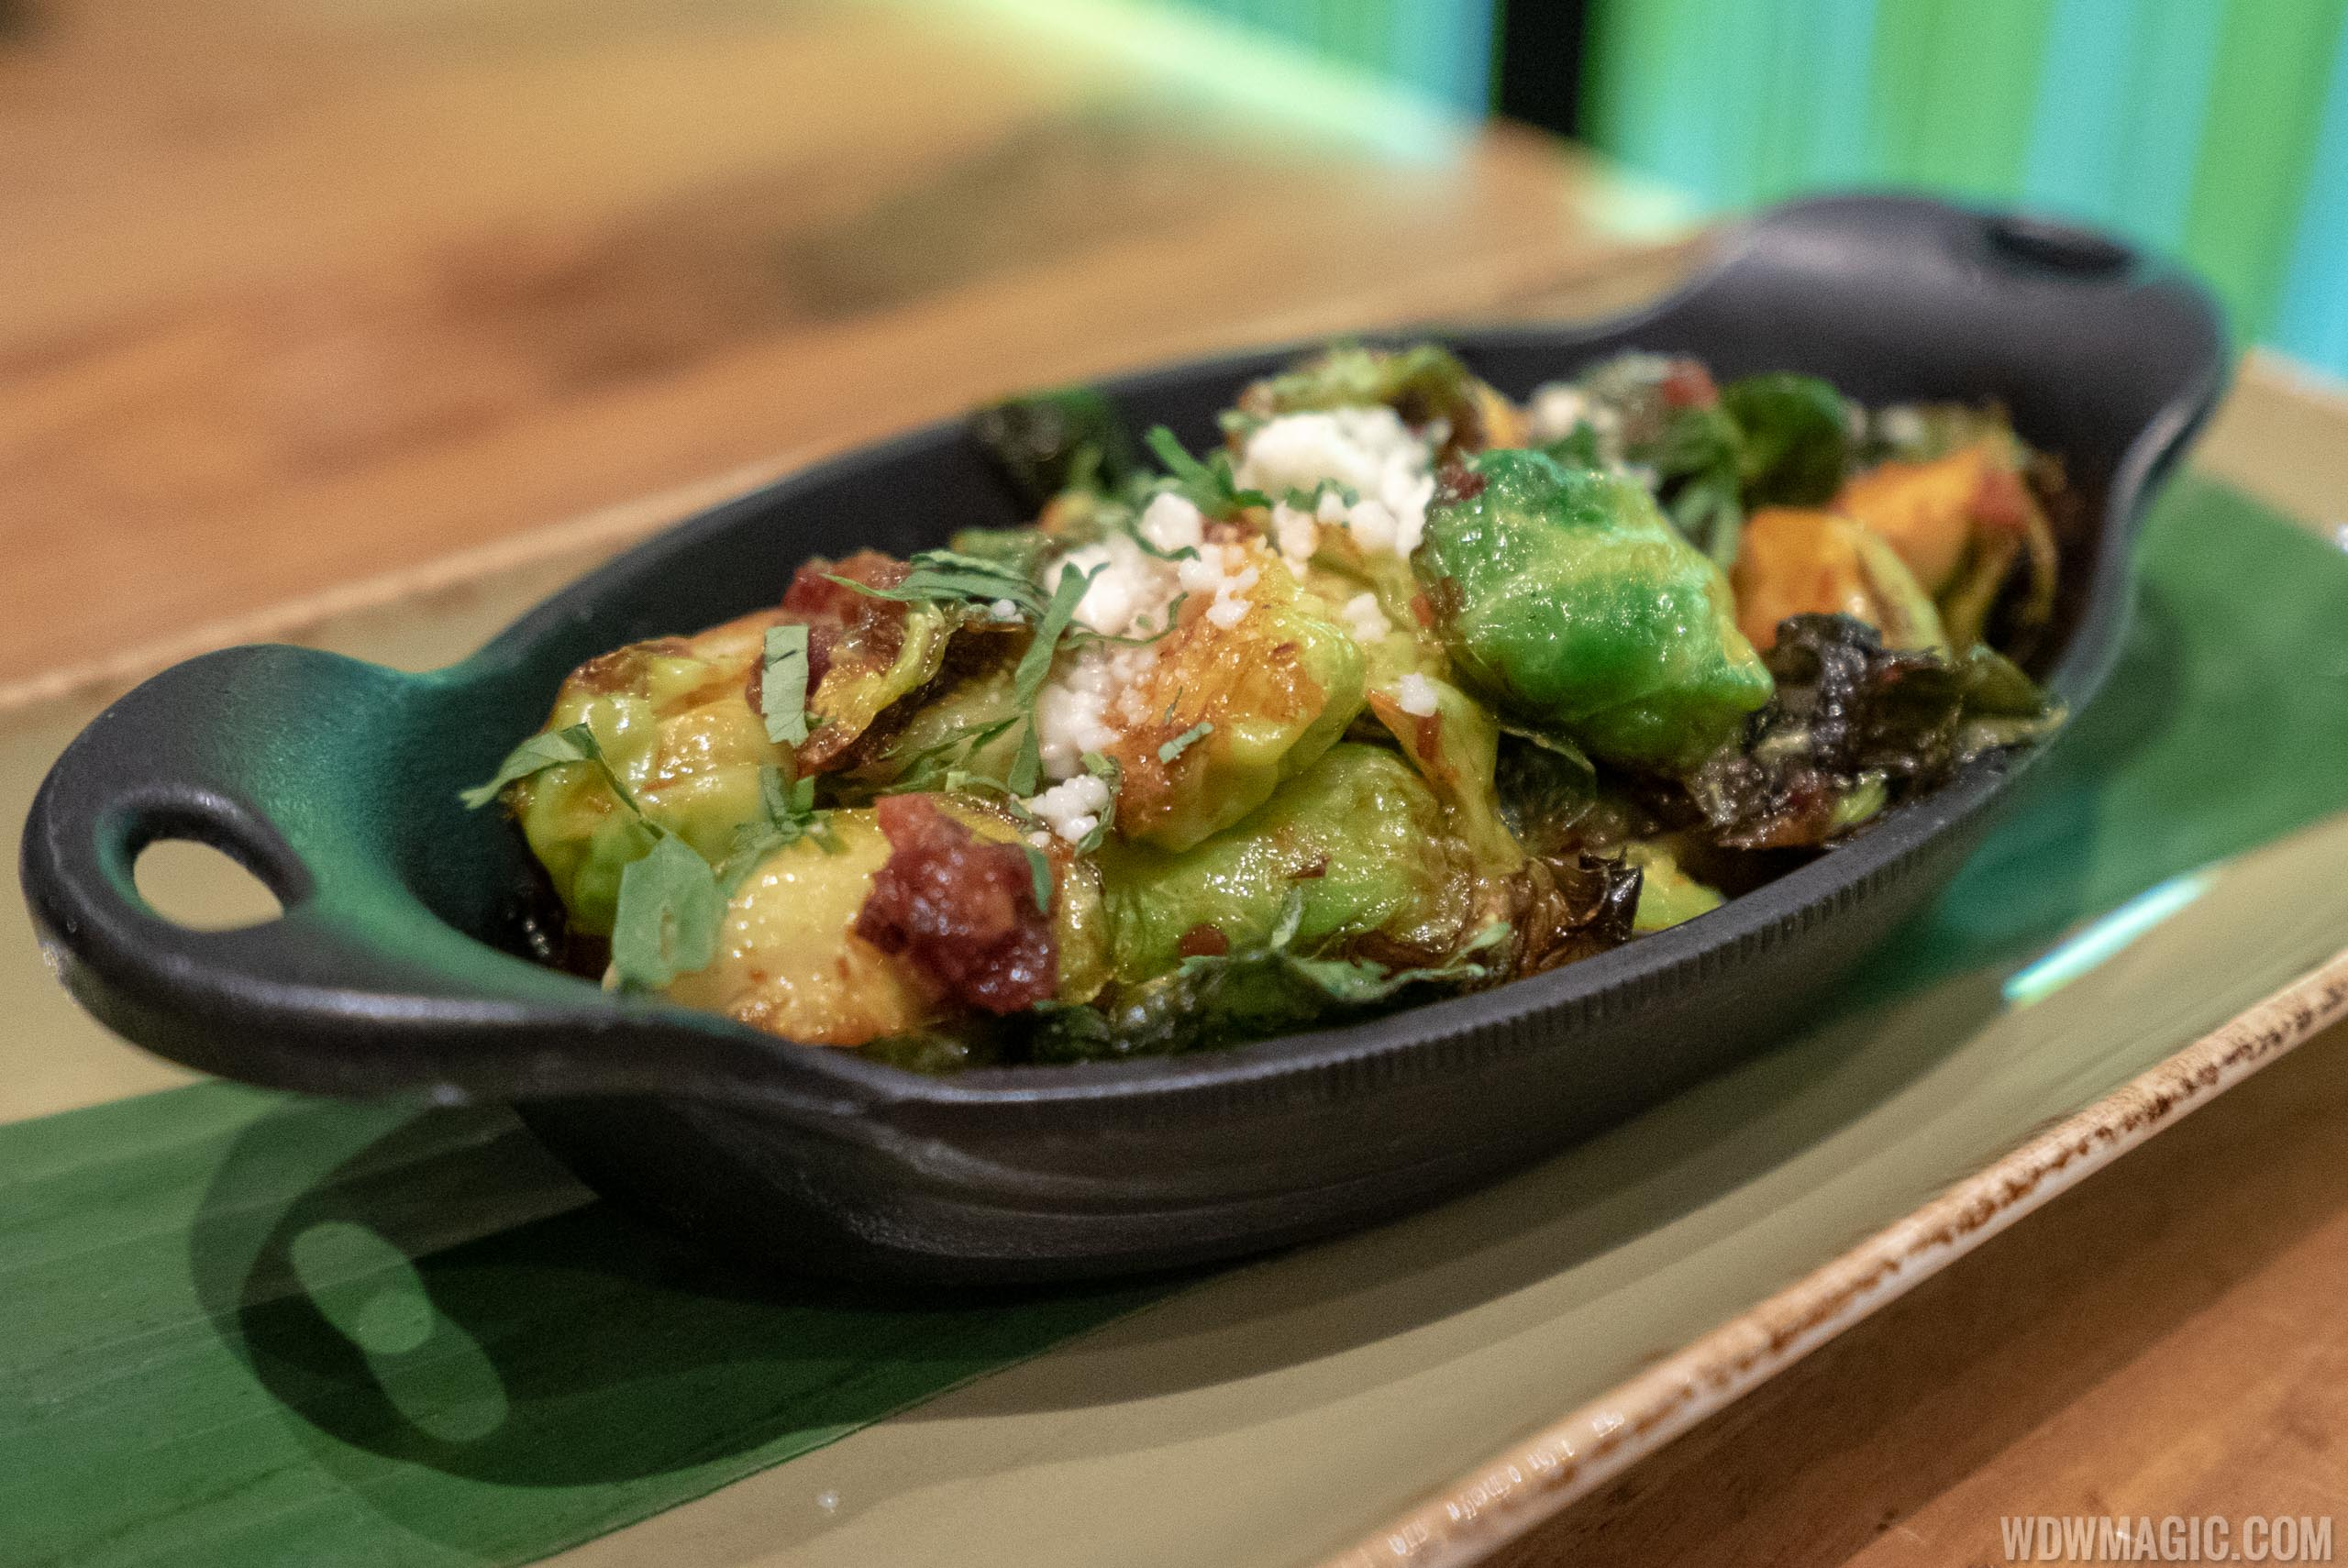 Frontera Cocina - Taste of Mexico City - Three Chile Roasted Brussels Sprouts